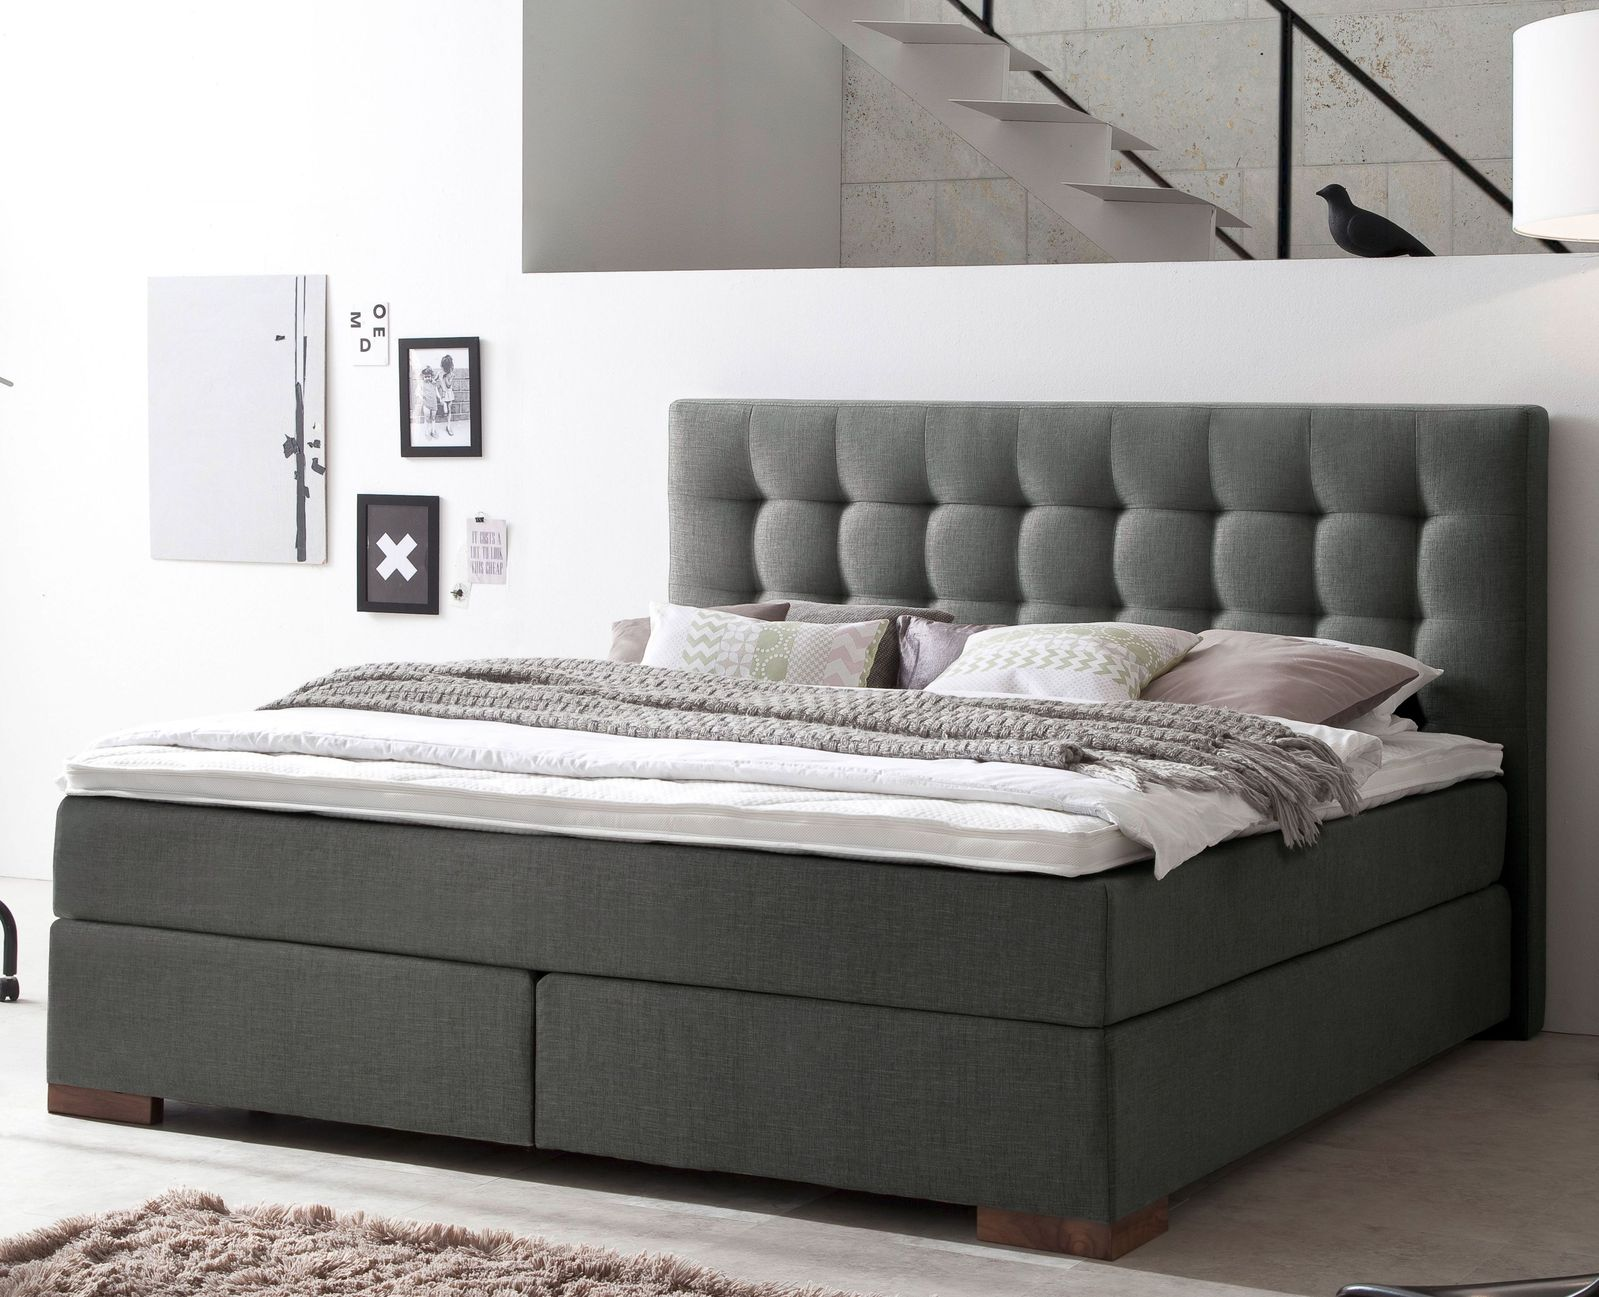 boxspringbett in z b 160x200 cm in h2 bis h5 g nstig arlon. Black Bedroom Furniture Sets. Home Design Ideas